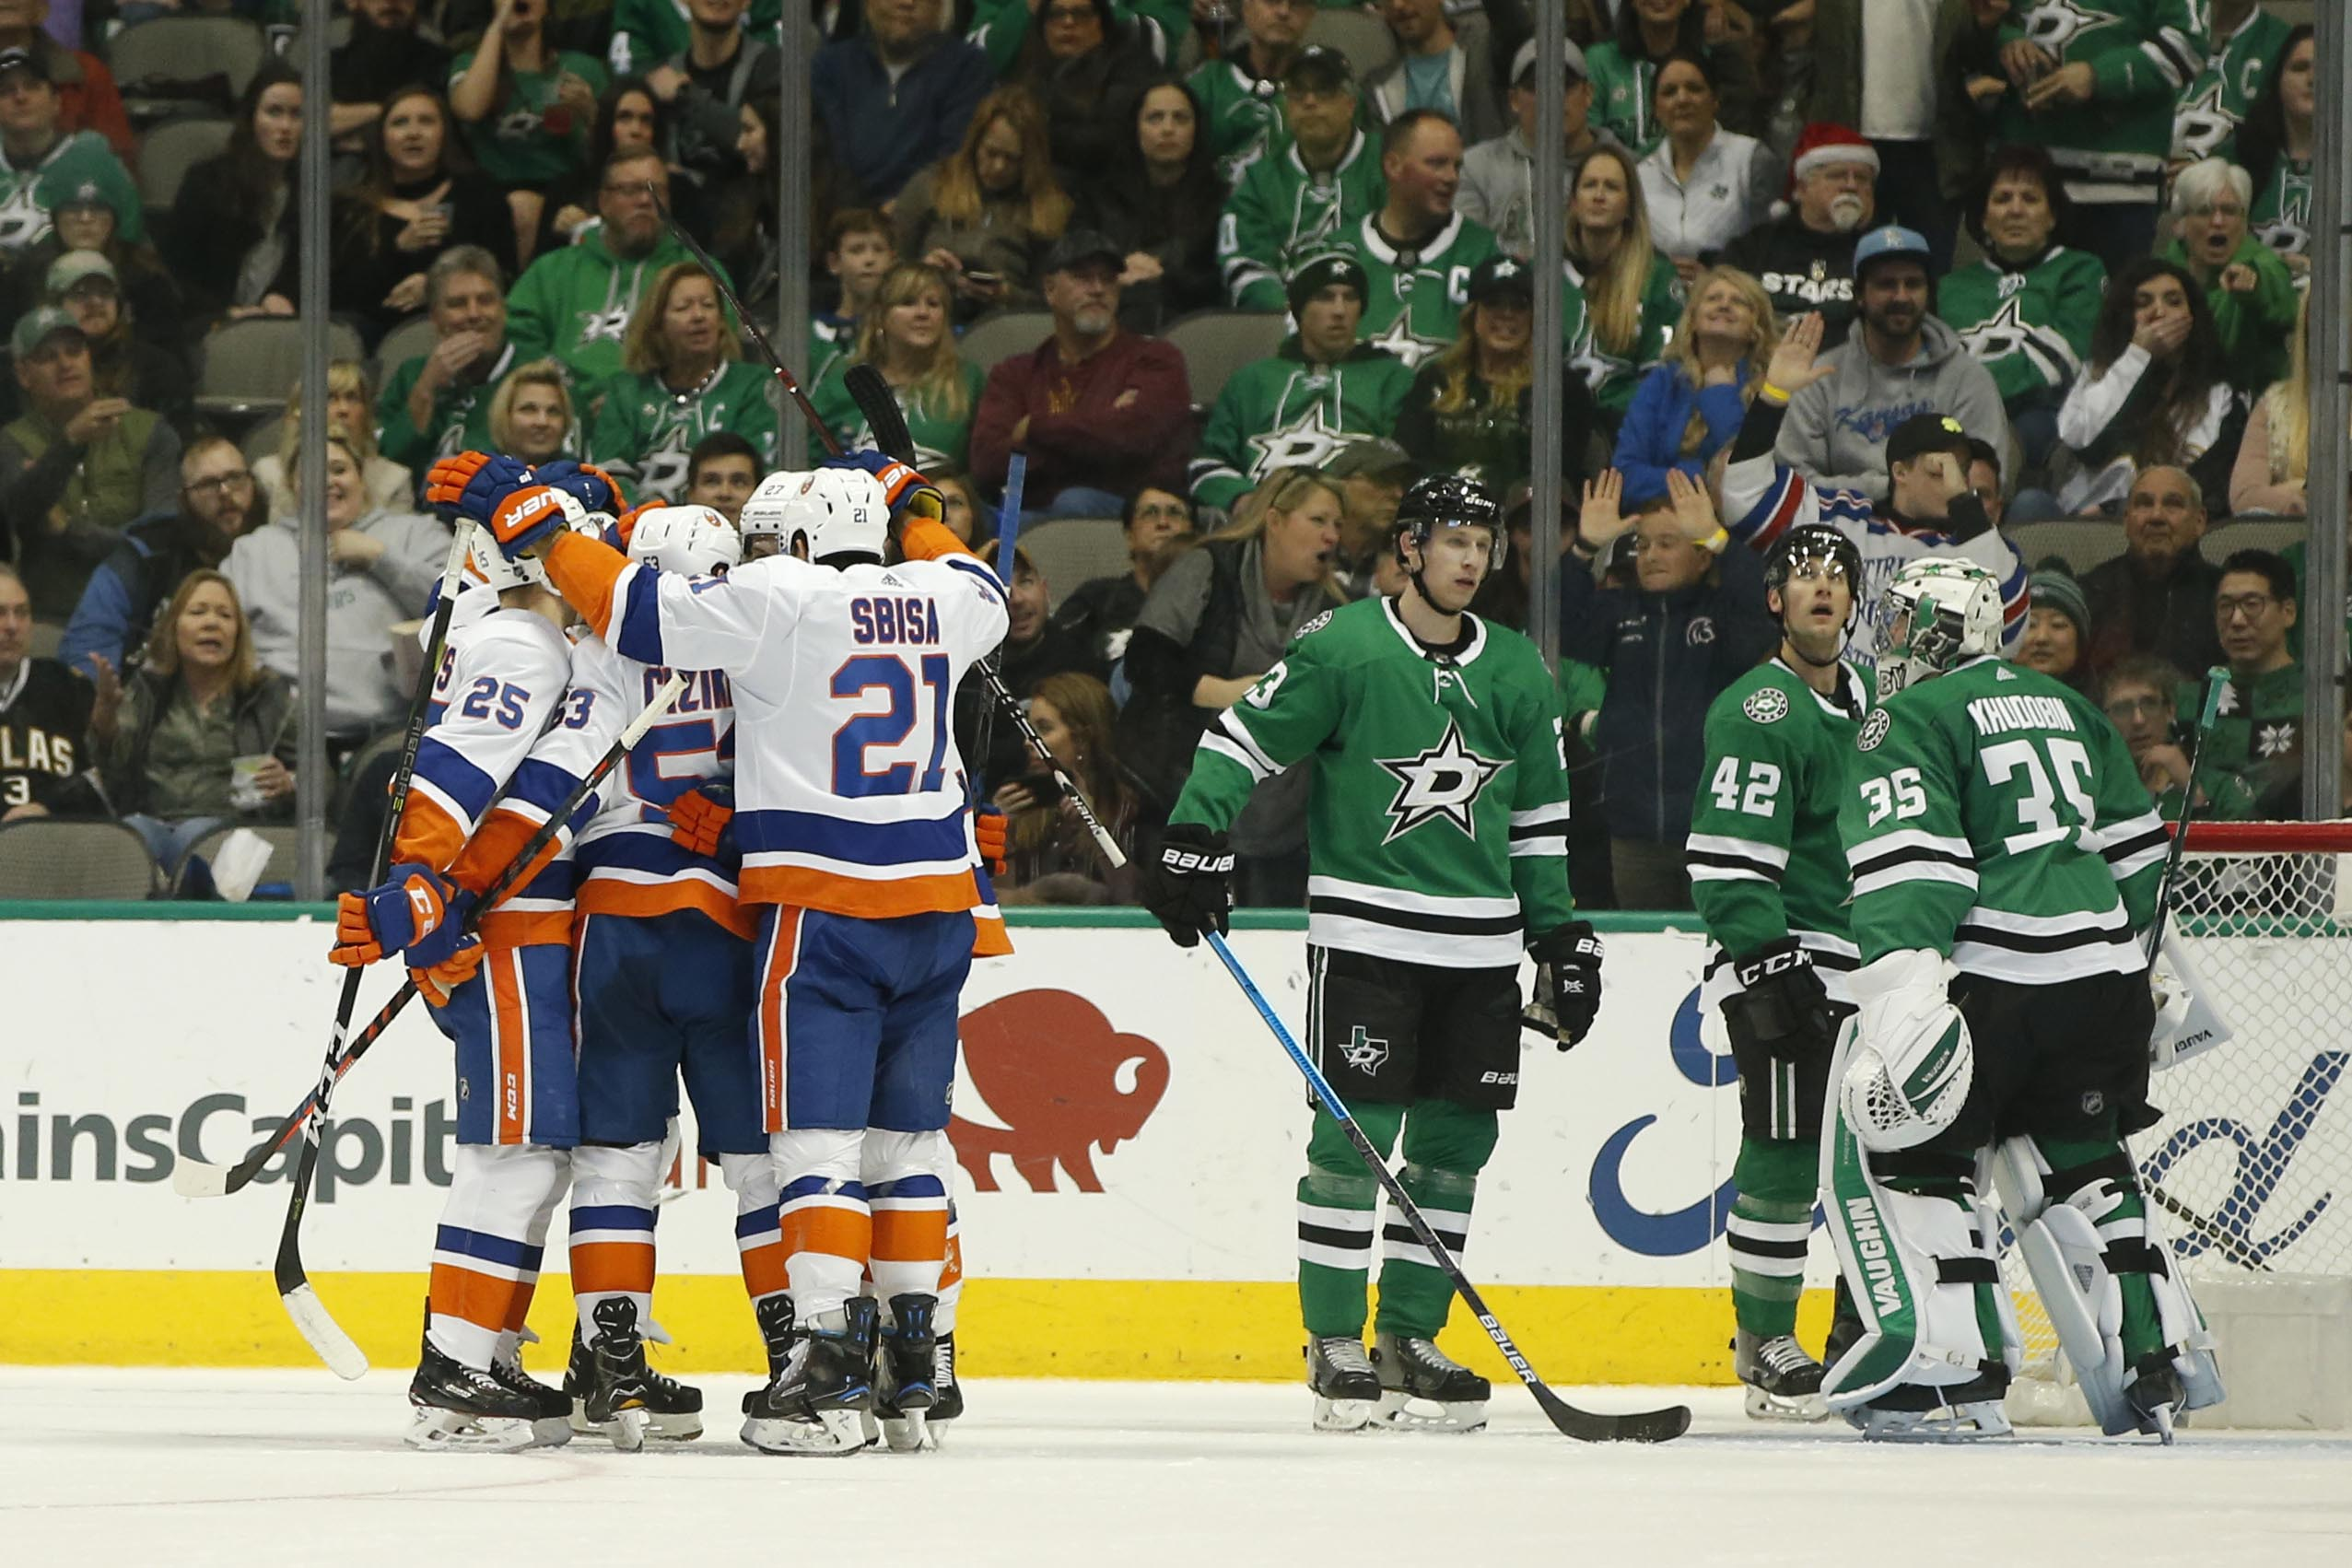 Dec 23, 2018; Dallas, TX, USA; New York Islanders celebrate a goal in the second period against the Dallas Stars at American Airlines Center. Mandatory Credit: Tim Heitman-USA TODAY Sports